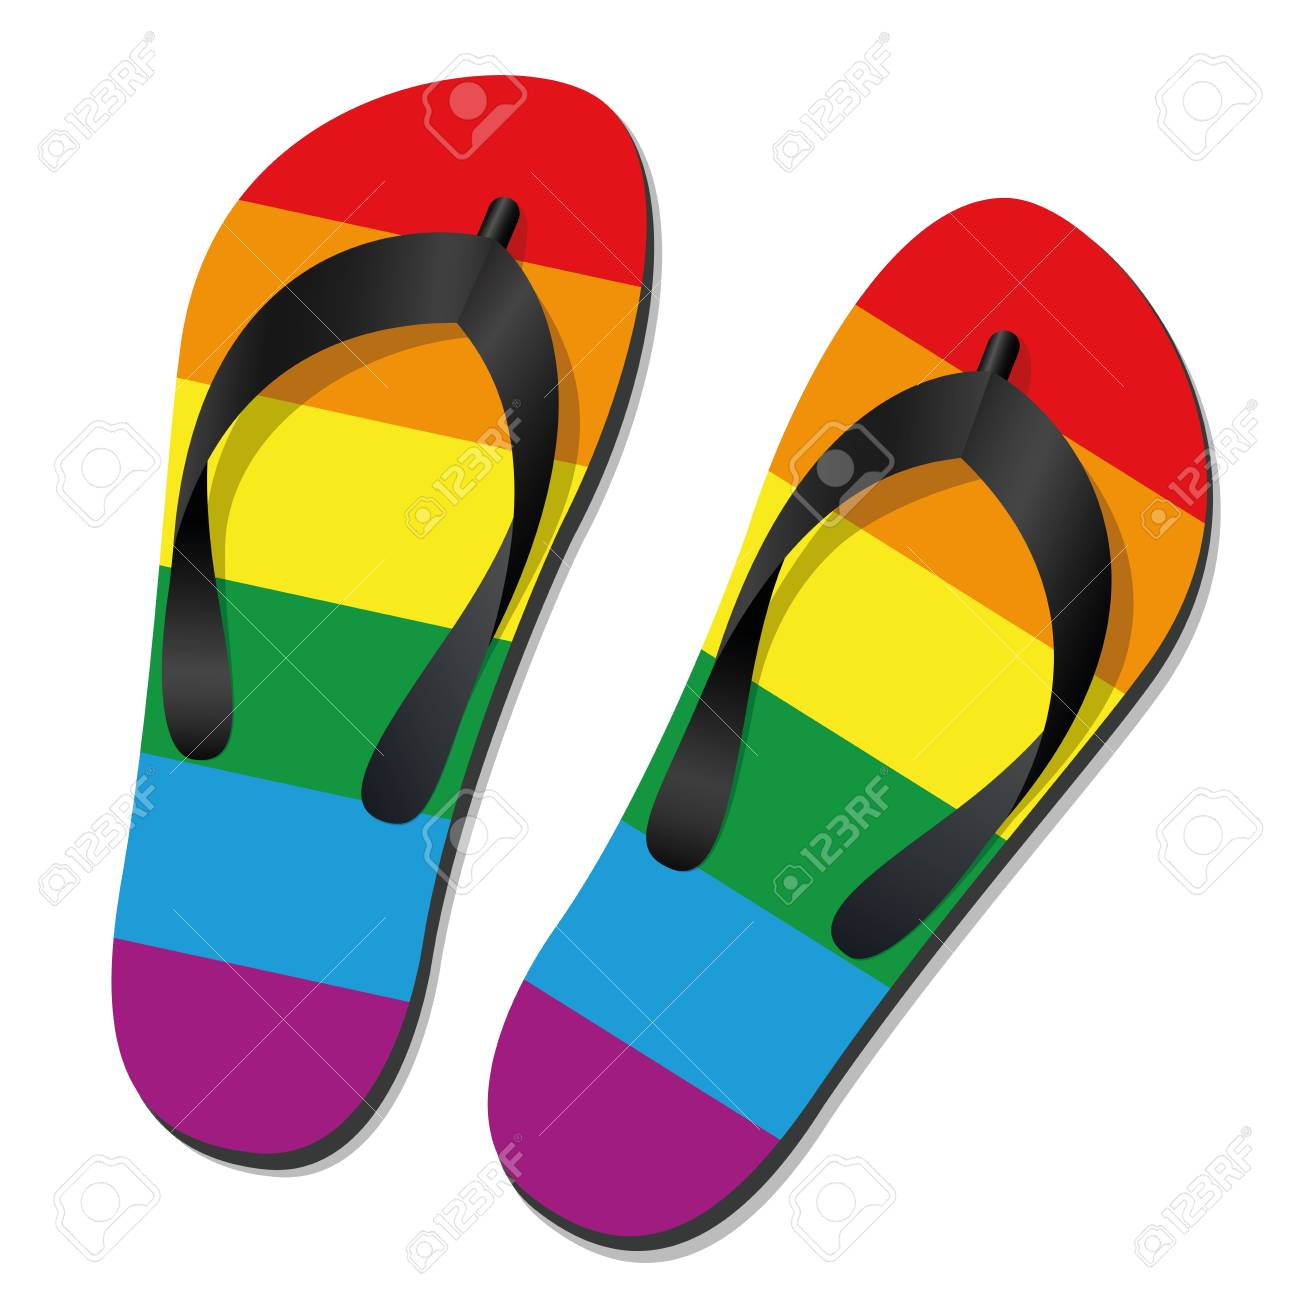 68f669069cce Gay pride flip flops - isolated vector illustration on white. Stock Vector  - 94678381